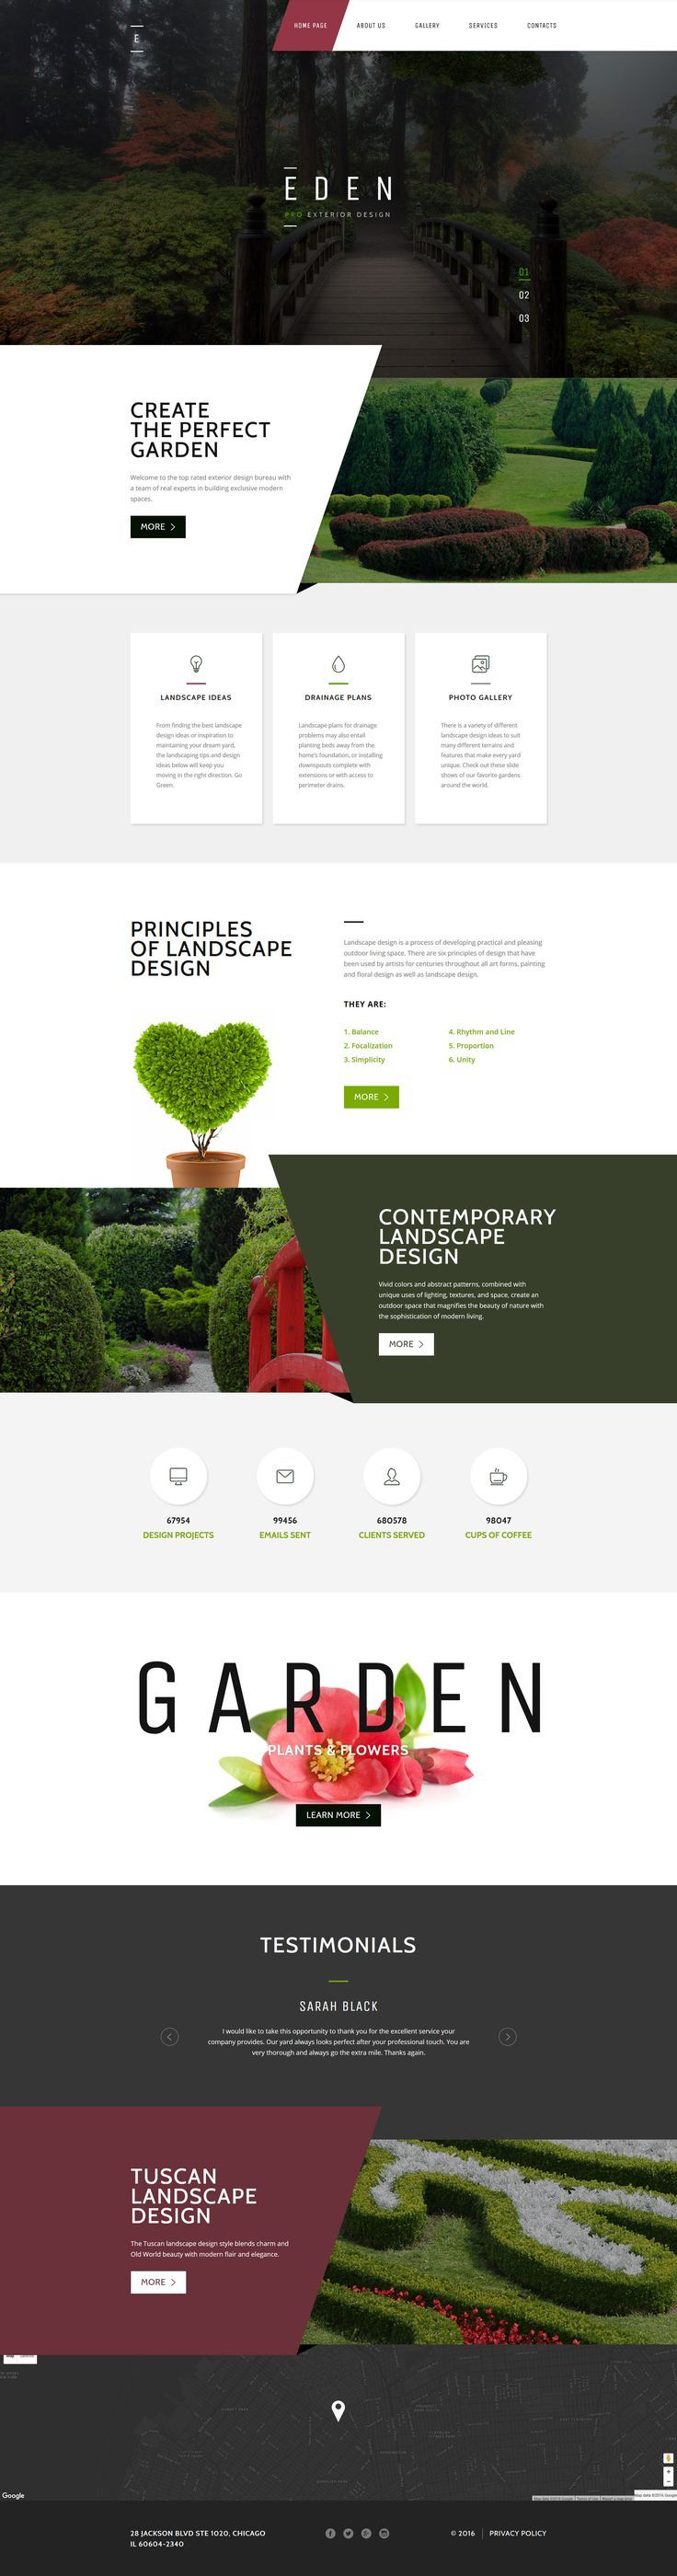 Garden Design Website Ideas Mesmerizing 33 Best Garden Design Ideas  For More #garden Design Ideas . Inspiration Design